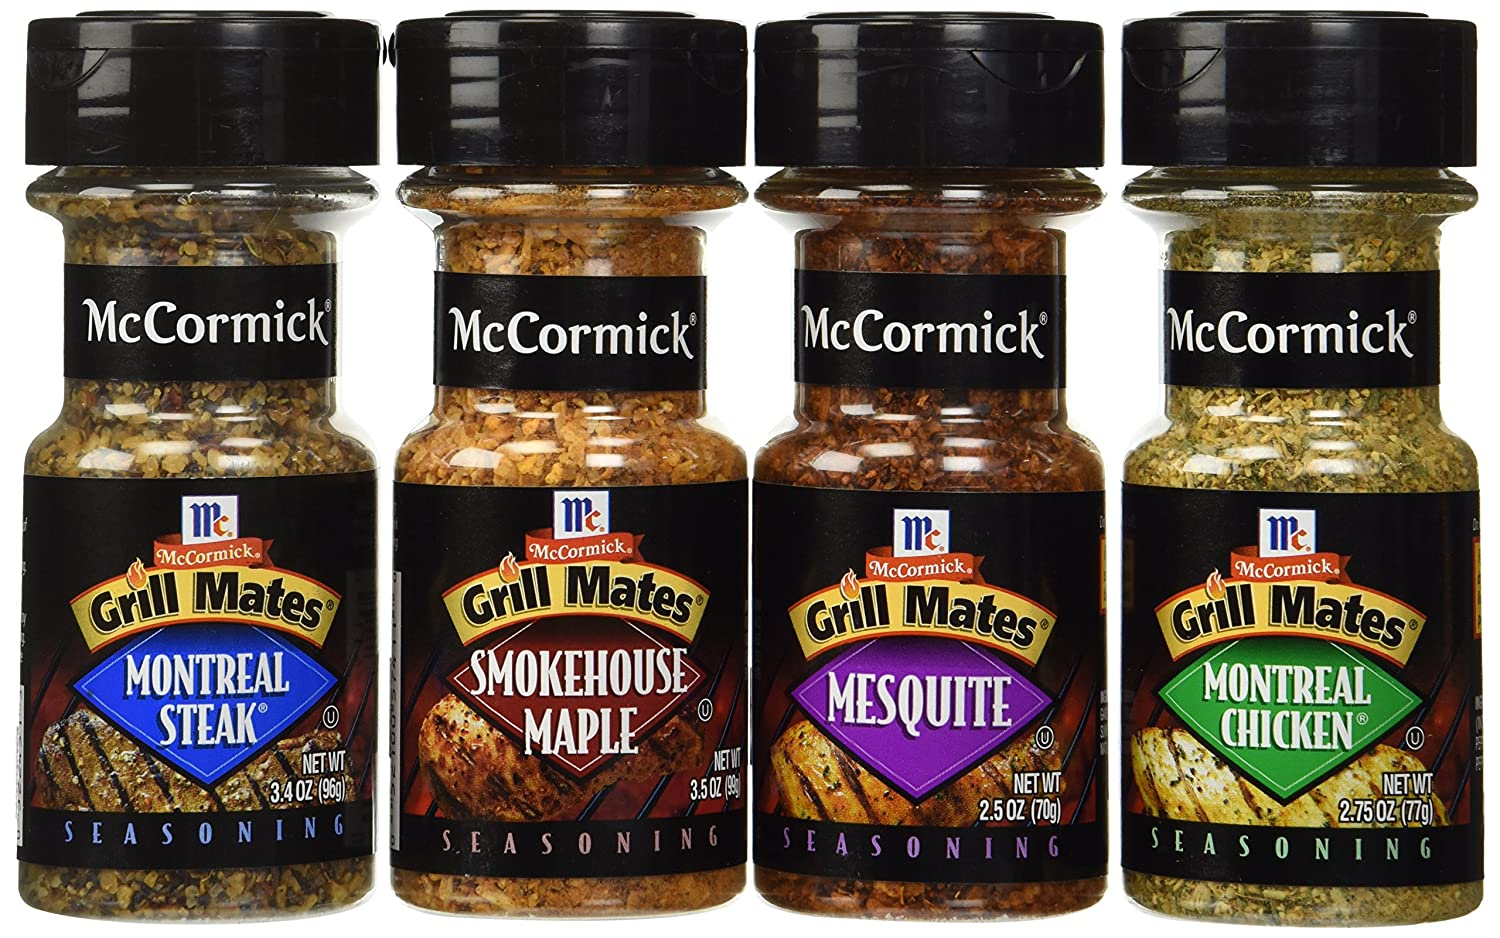 McCormick Grill Mates Variety Pack, Montreal Chicken, Montreal Steak, Mesquite